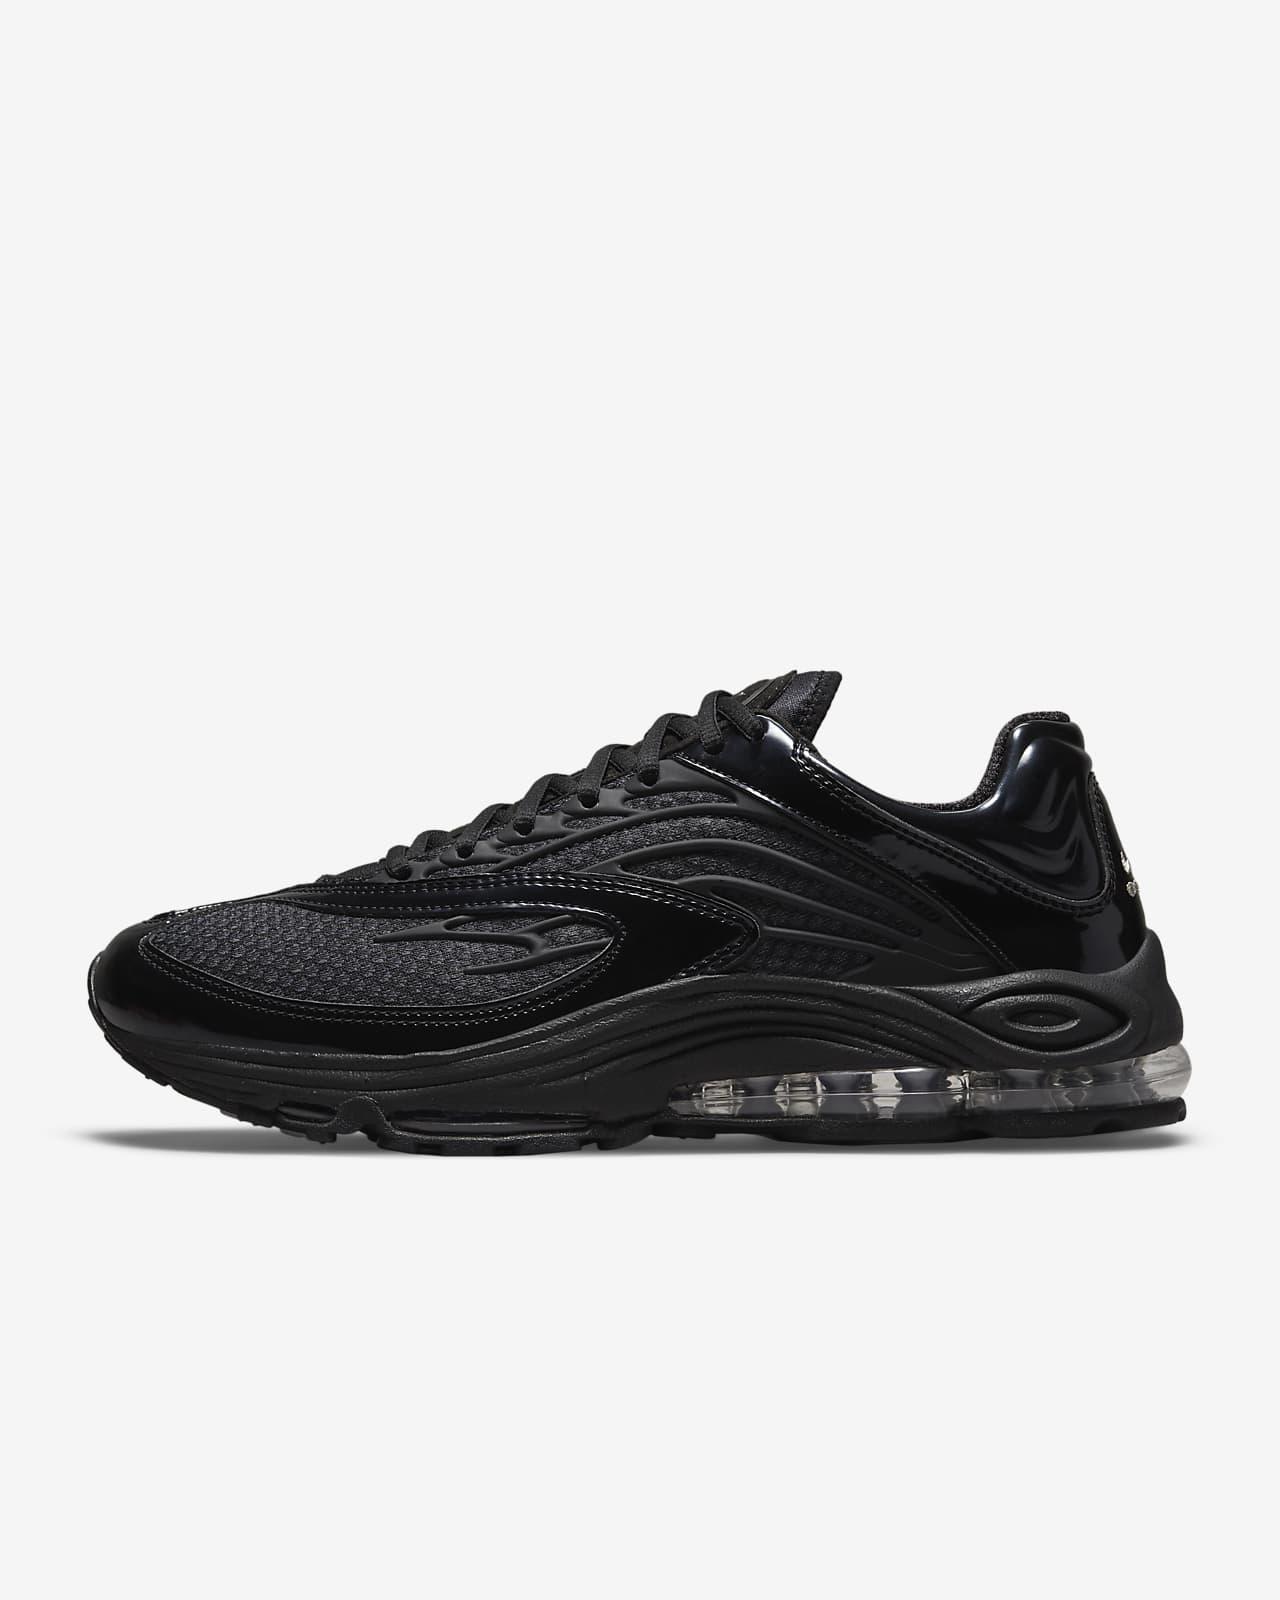 Chaussure Nike Air Tuned Max pour Homme